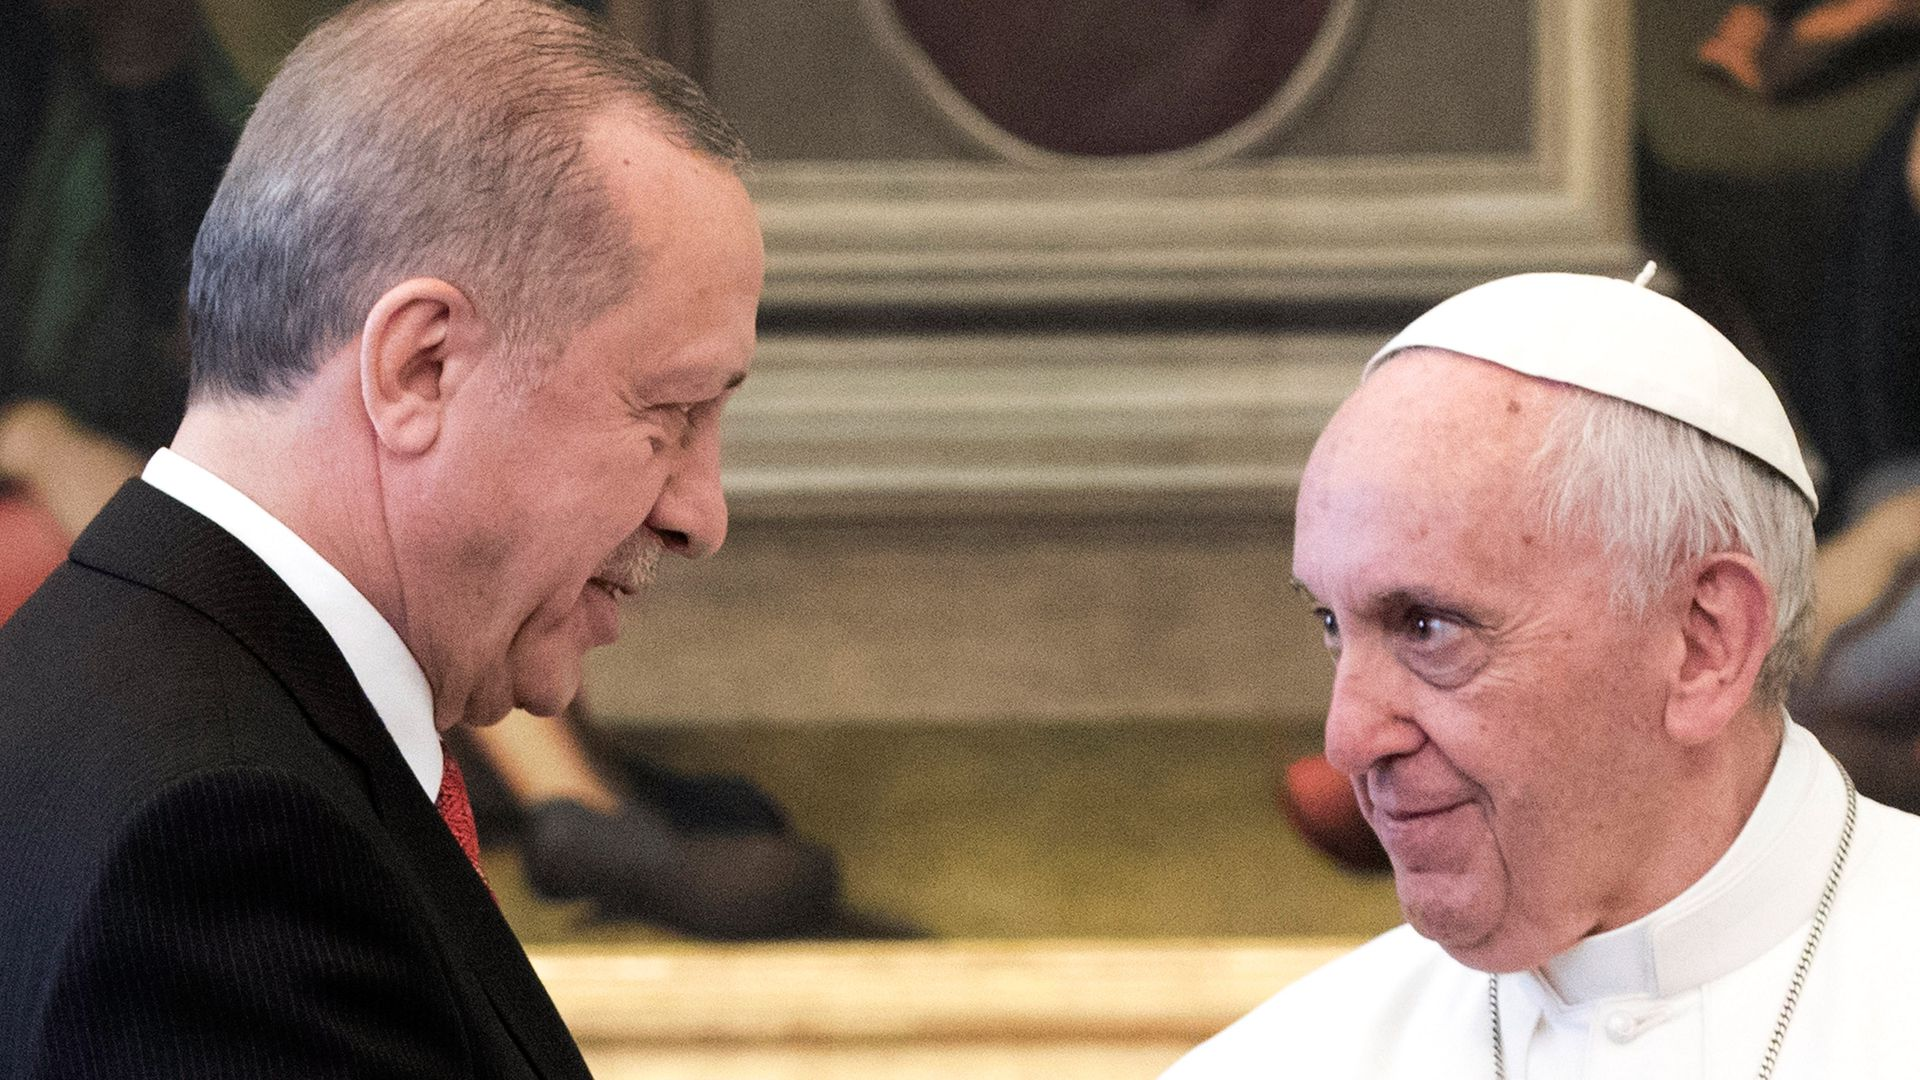 Pope Francis meets President of Turkey Recep Tayyip Erdogan at the Apostolic Palace.